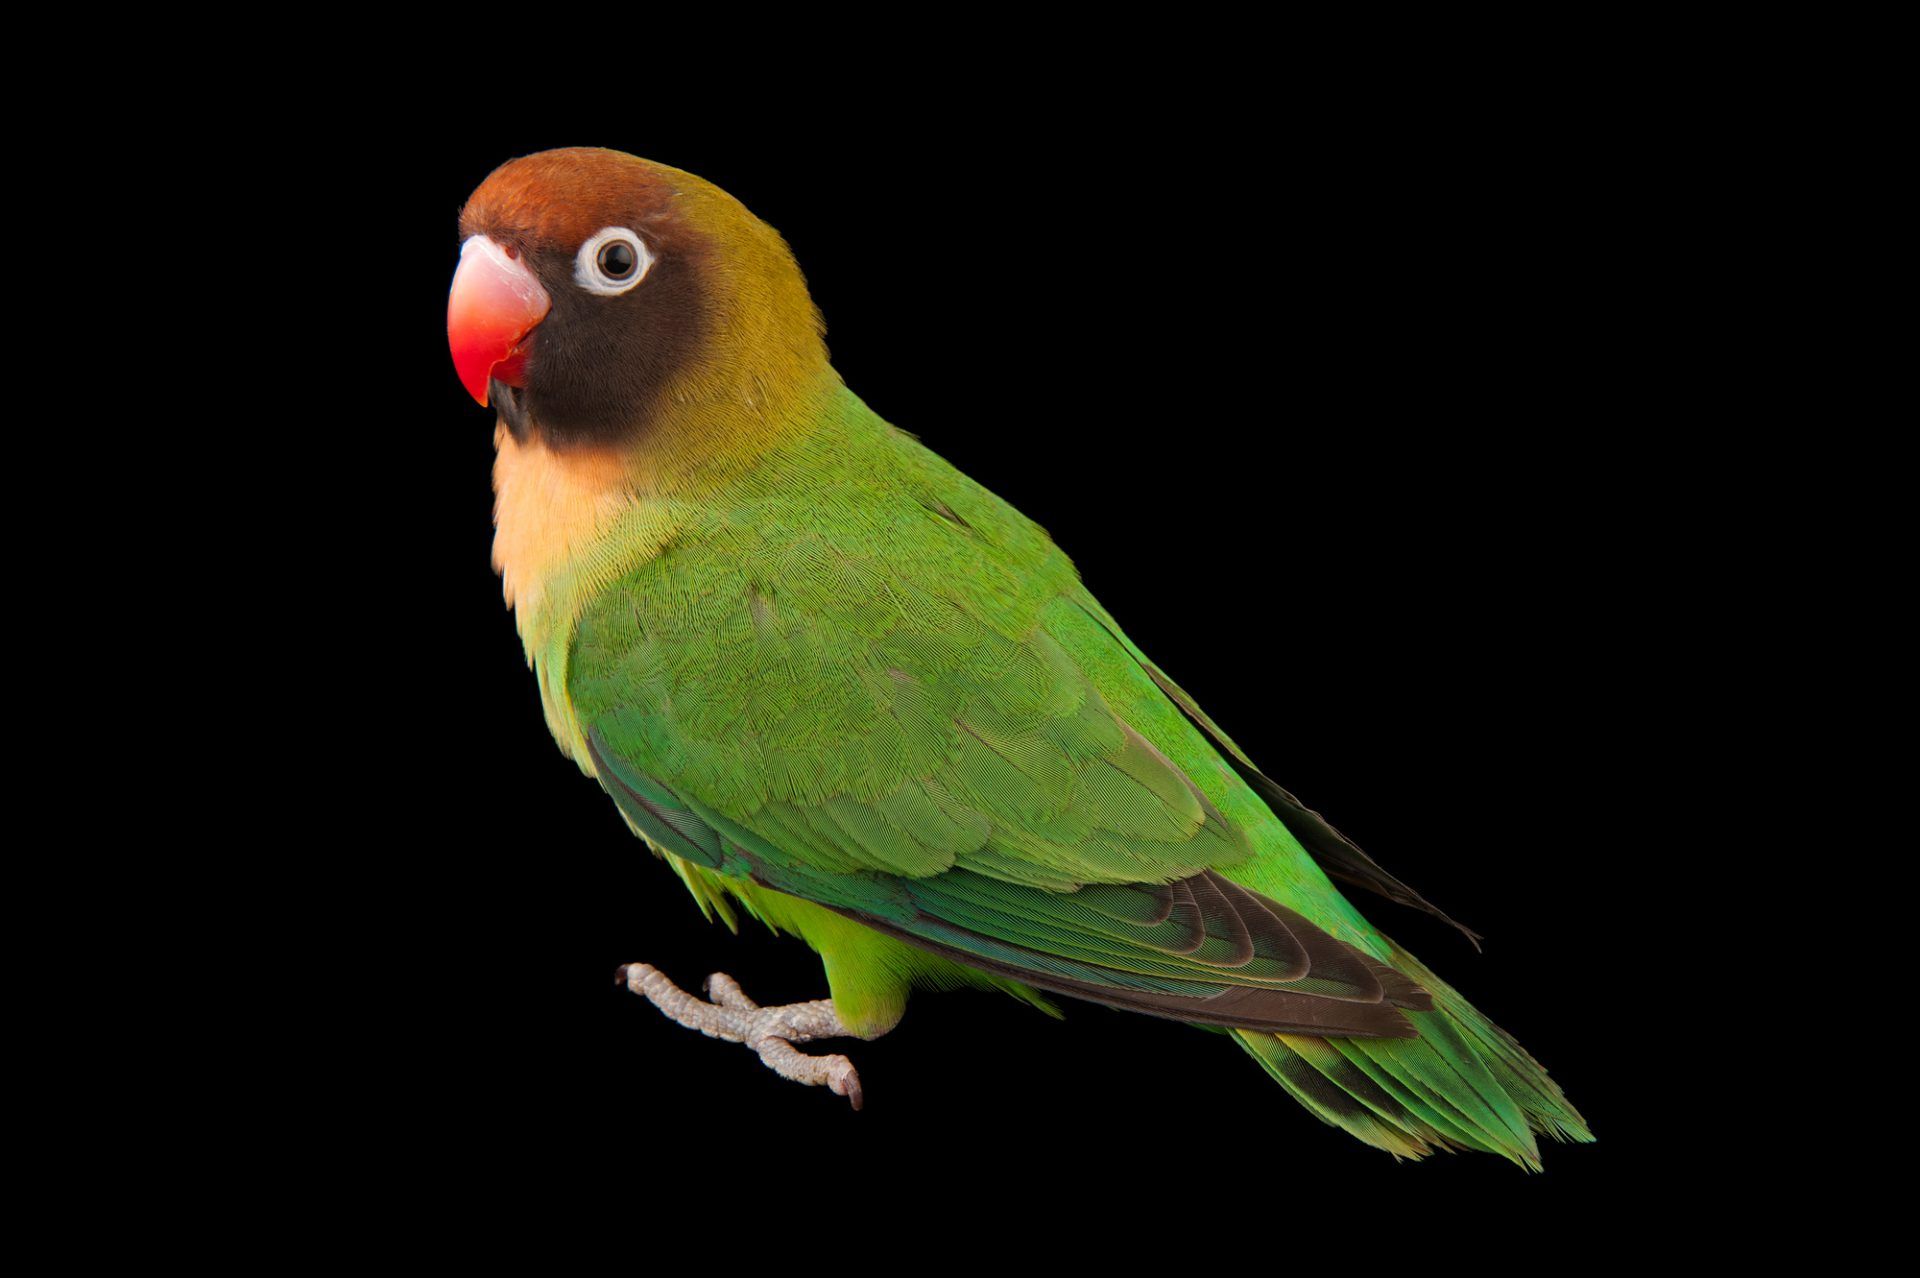 A vulnerable black-cheeked lovebird (Agapornis nigrigenis) at the Cleveland Metroparks Zoo.